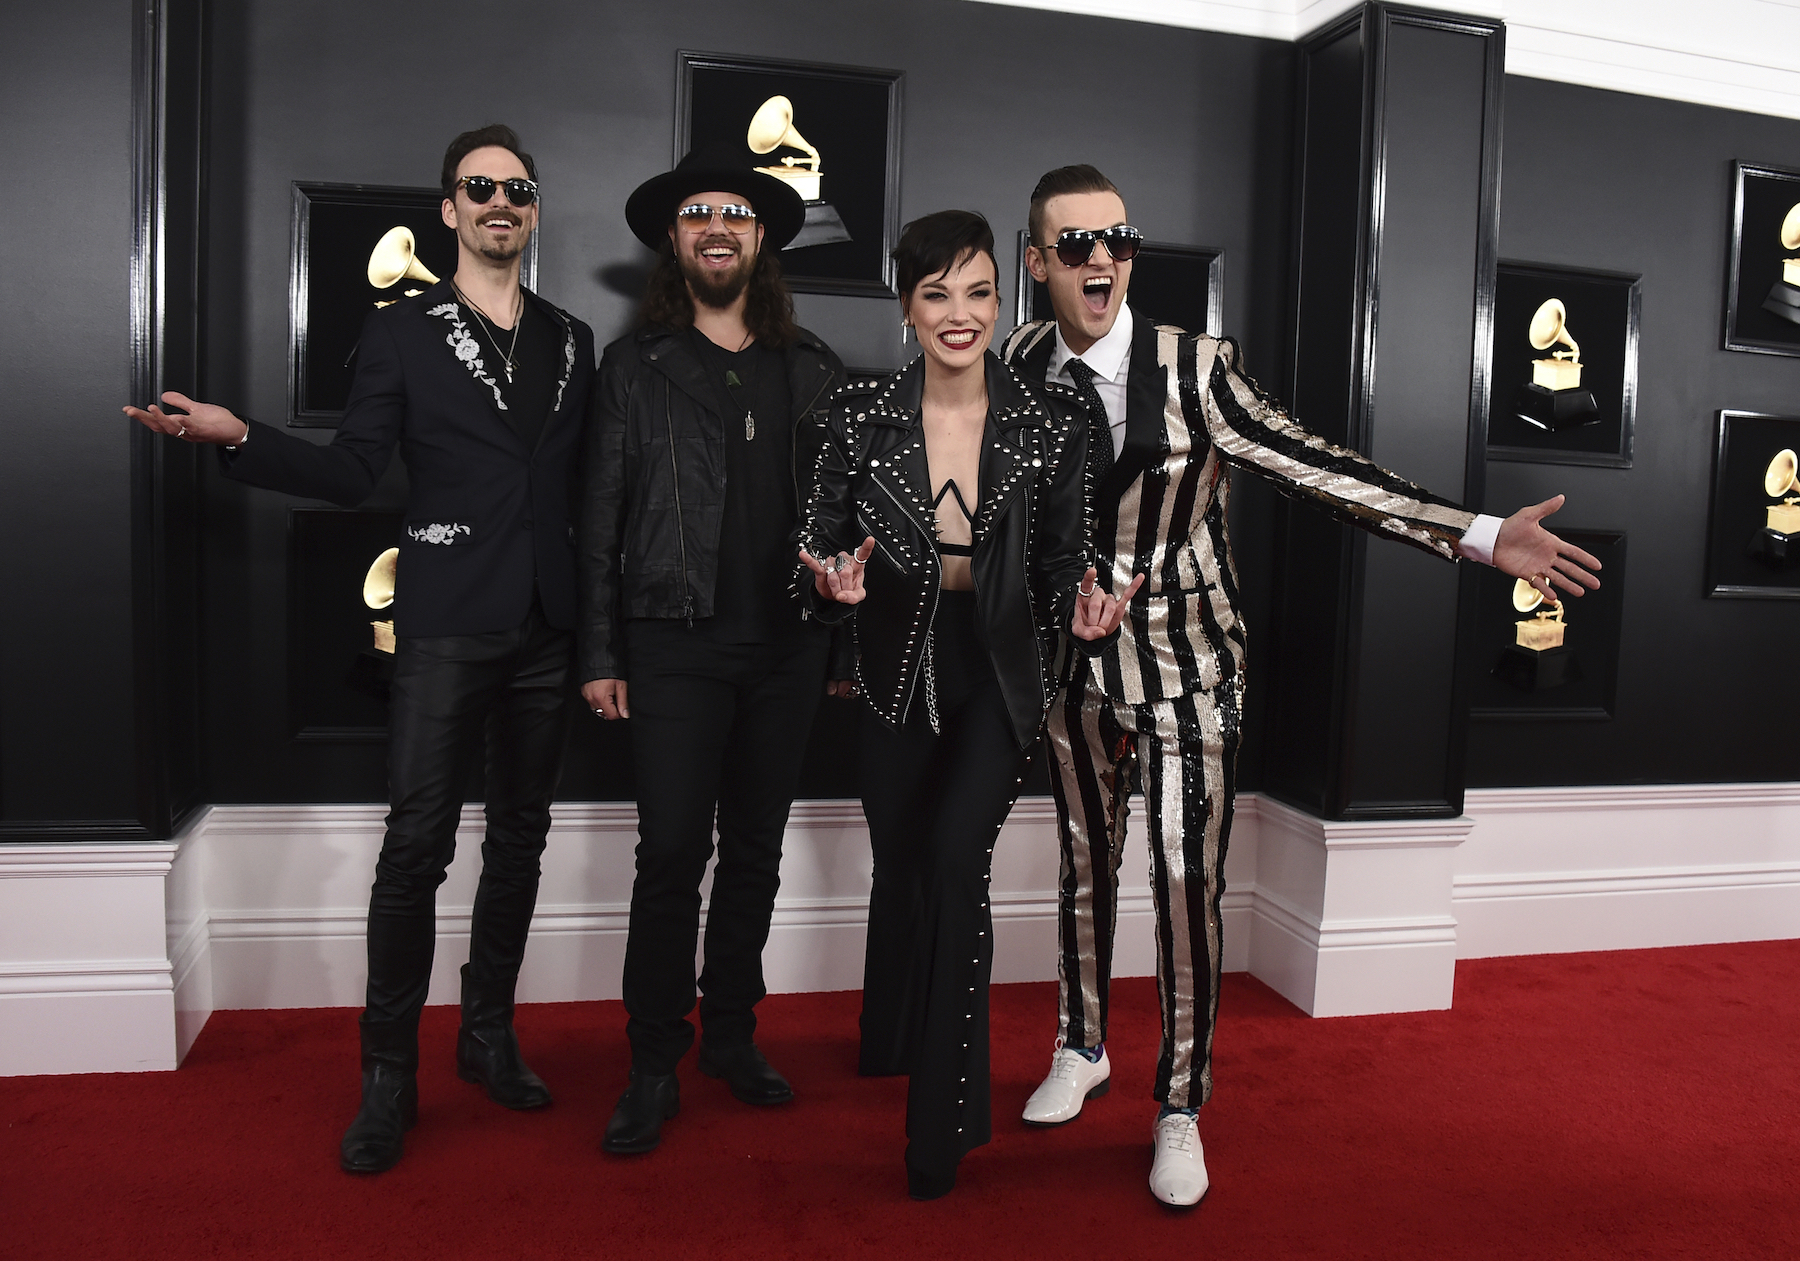 "<div class=""meta image-caption""><div class=""origin-logo origin-image ap""><span>AP</span></div><span class=""caption-text"">Josh Smith, from left, Joe Hottinger, Lzzy Hale, and Arejay Hale of Halestorm arrive at the 61st annual Grammy Awards at the Staples Center on Sunday, Feb. 10, 2019. (Jordan Strauss/Invision/AP)</span></div>"